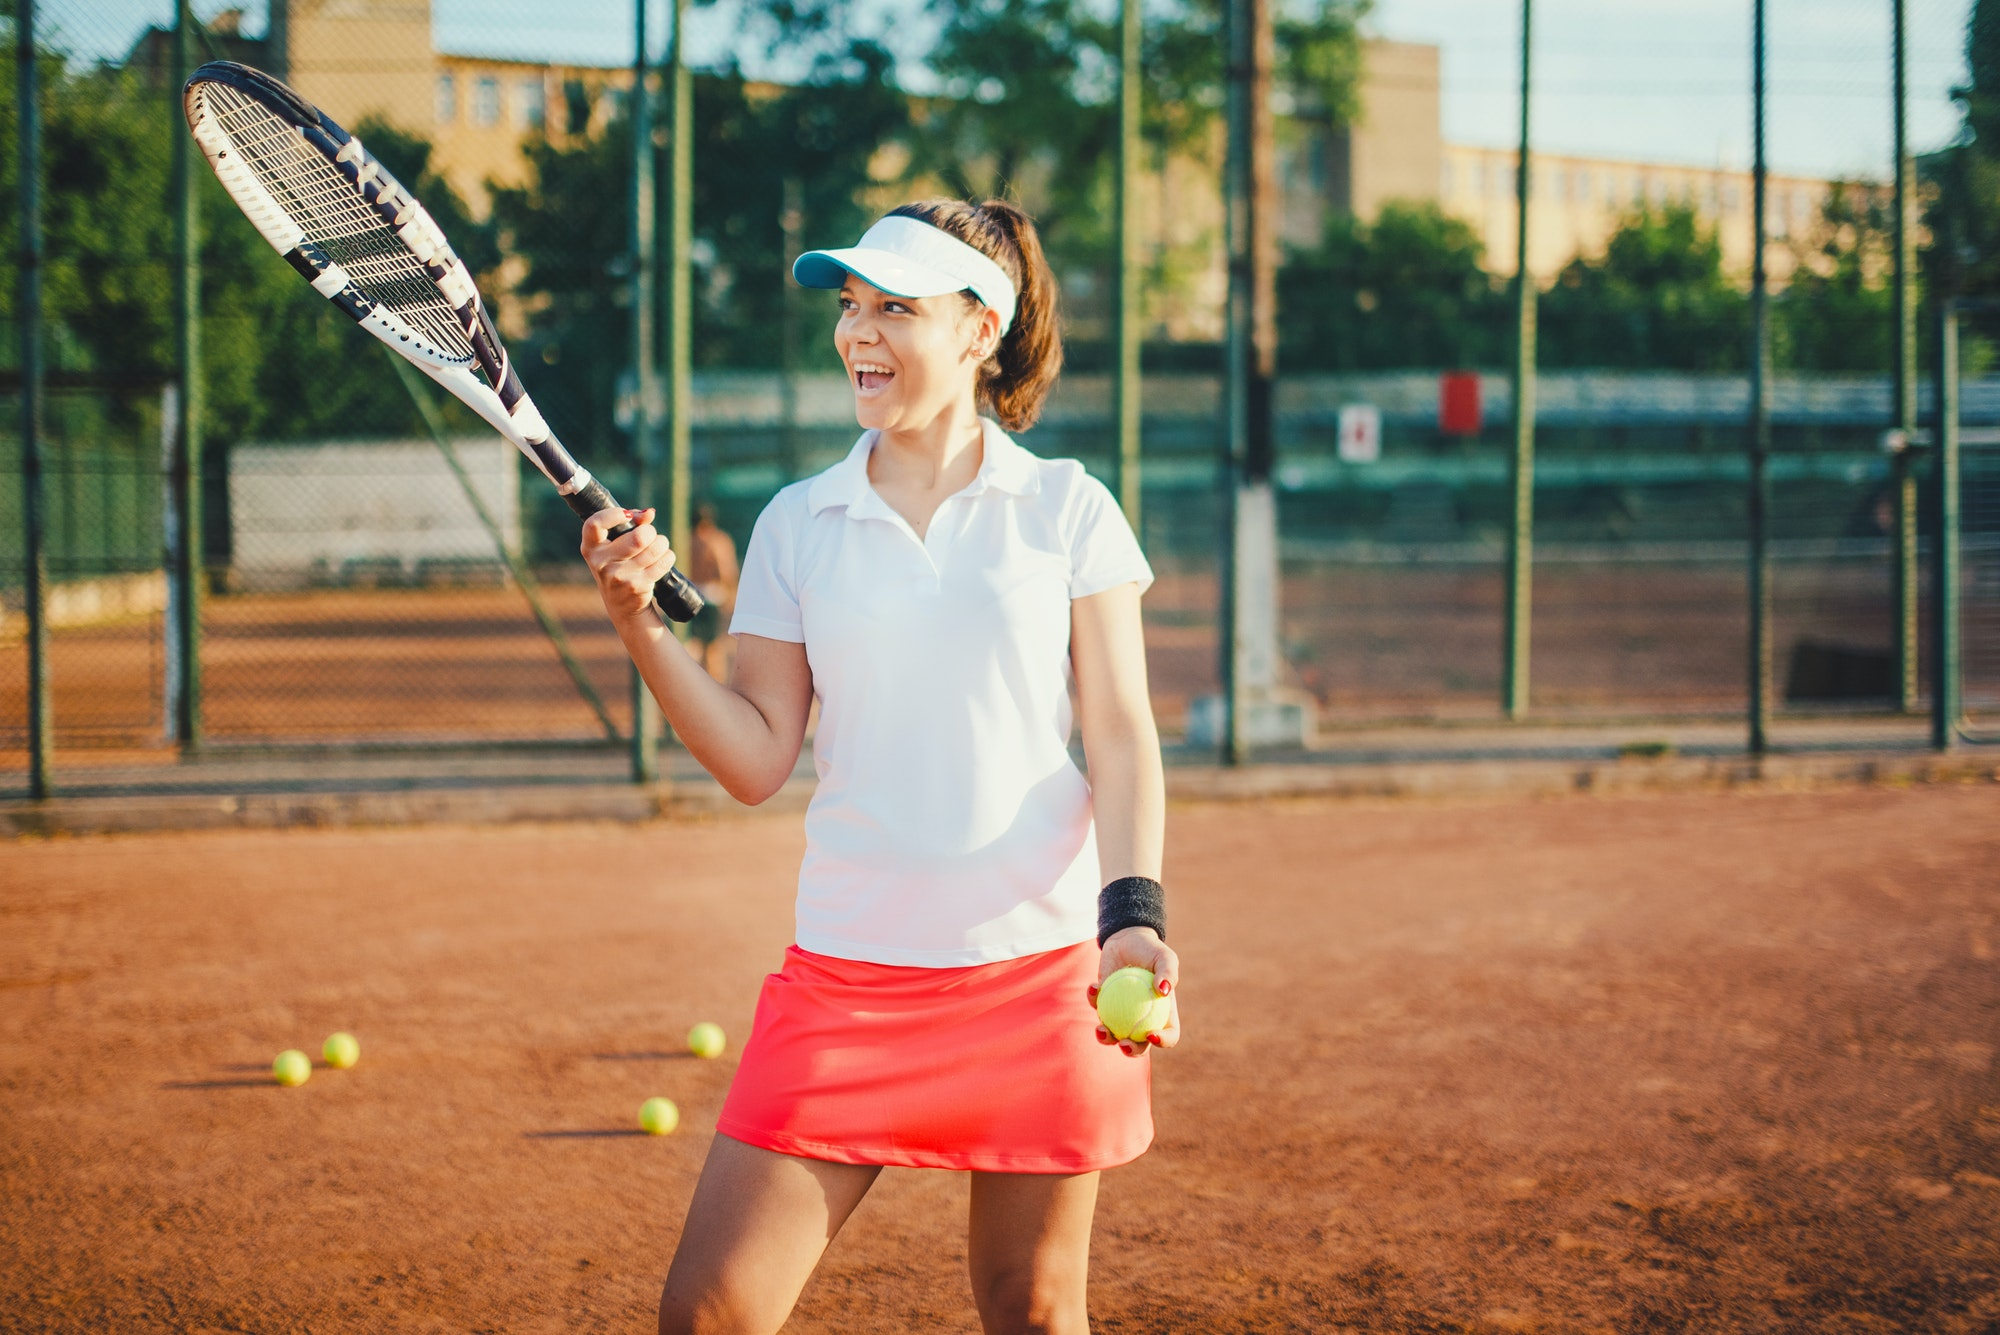 young tennis player, sportswoman on clay court with racquet and balls.